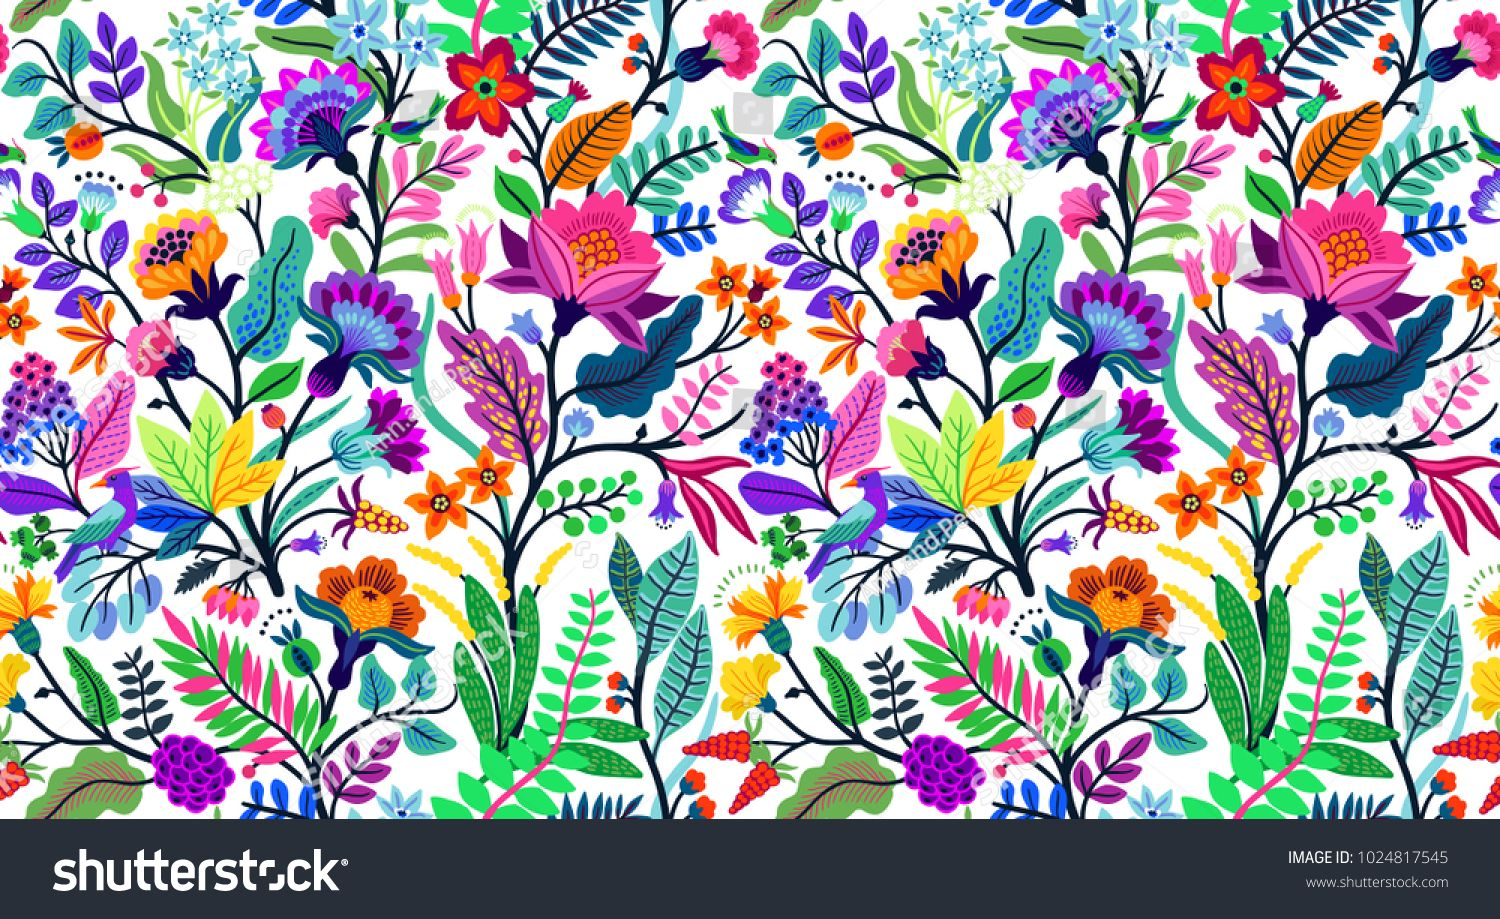 Seamless Floral Pattern With Bright Colorful Flowers And Tropic